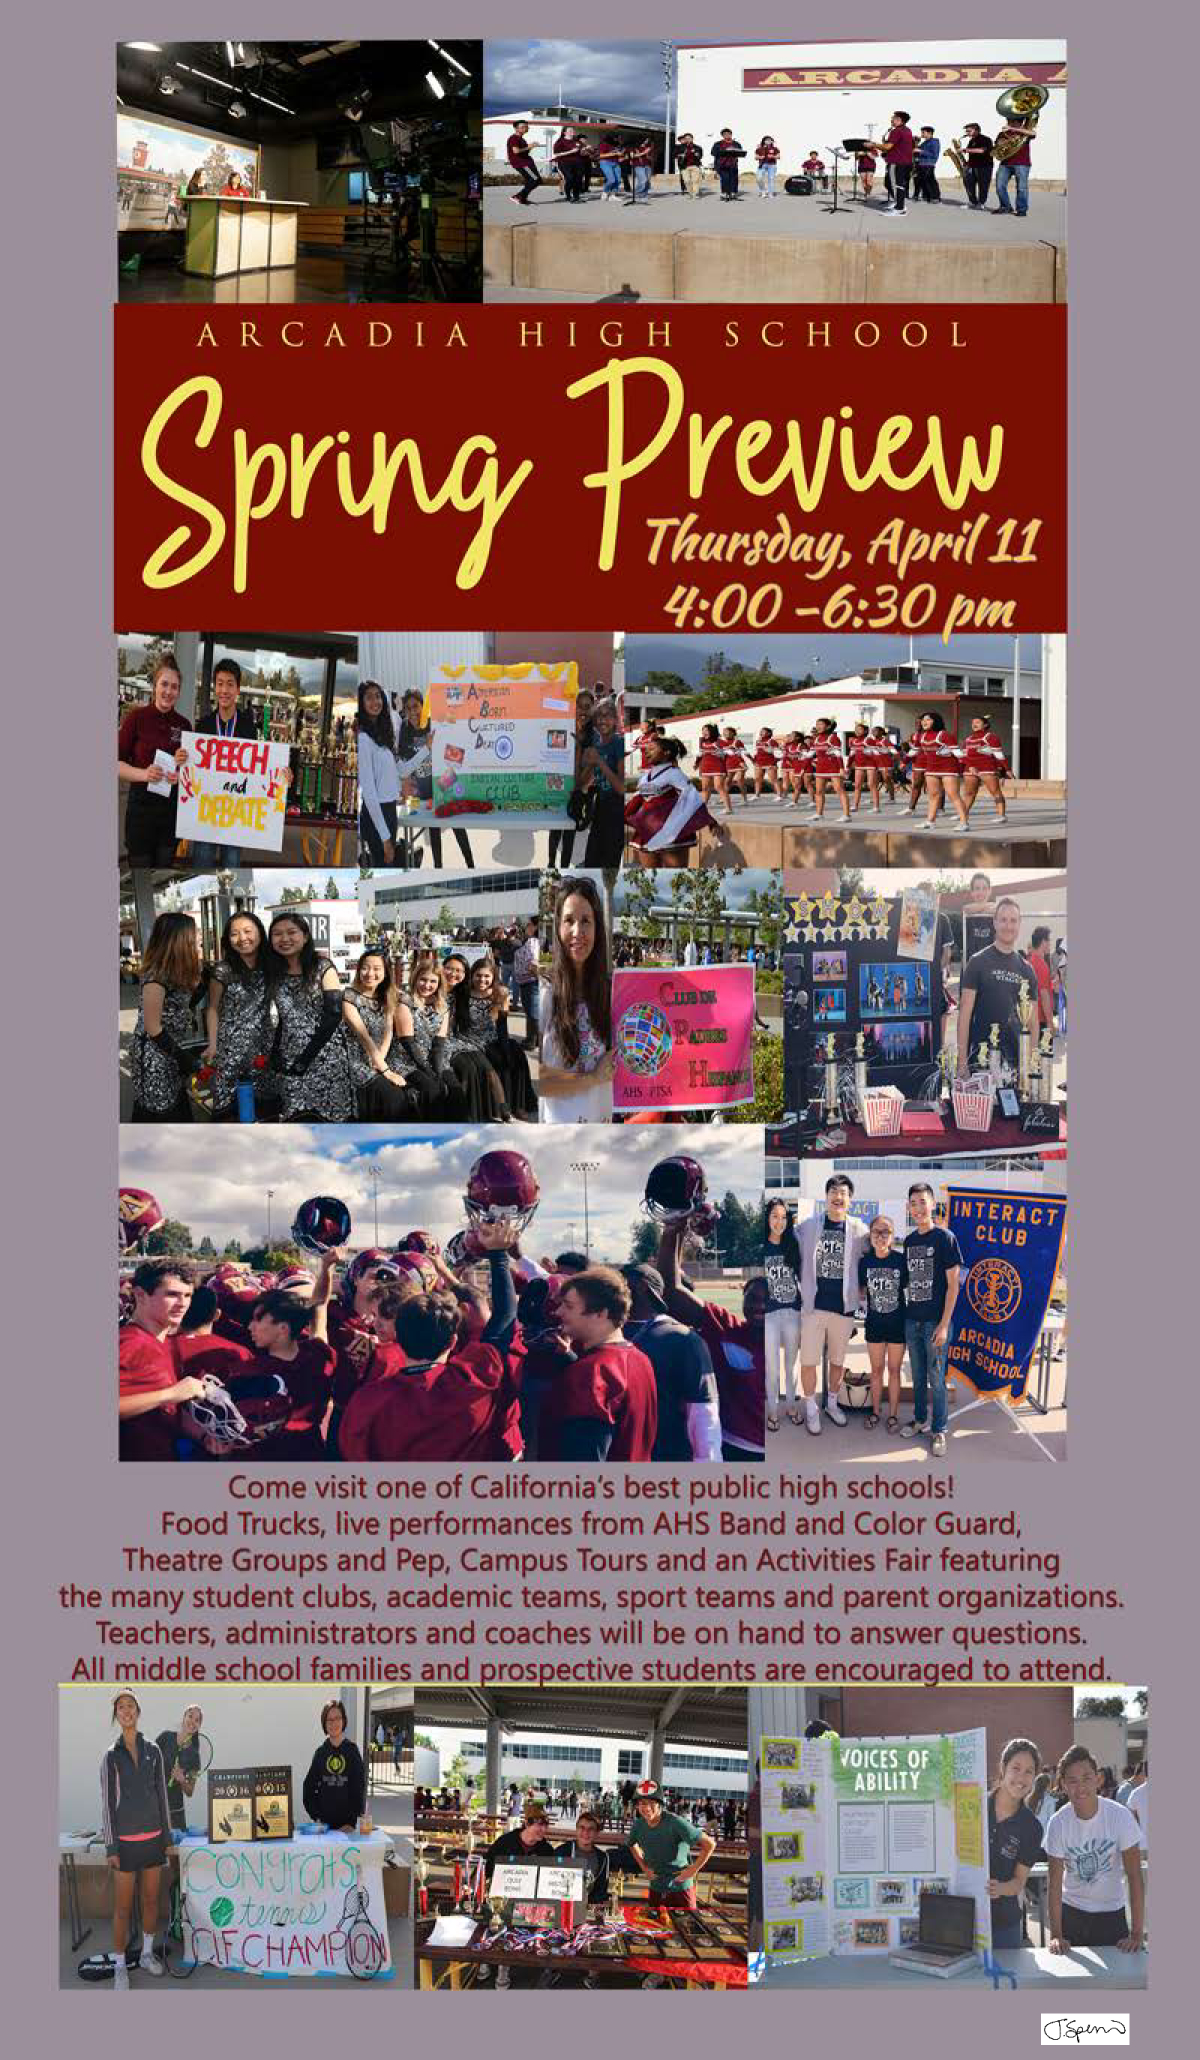 Arcadia High Open House & Spring Preview